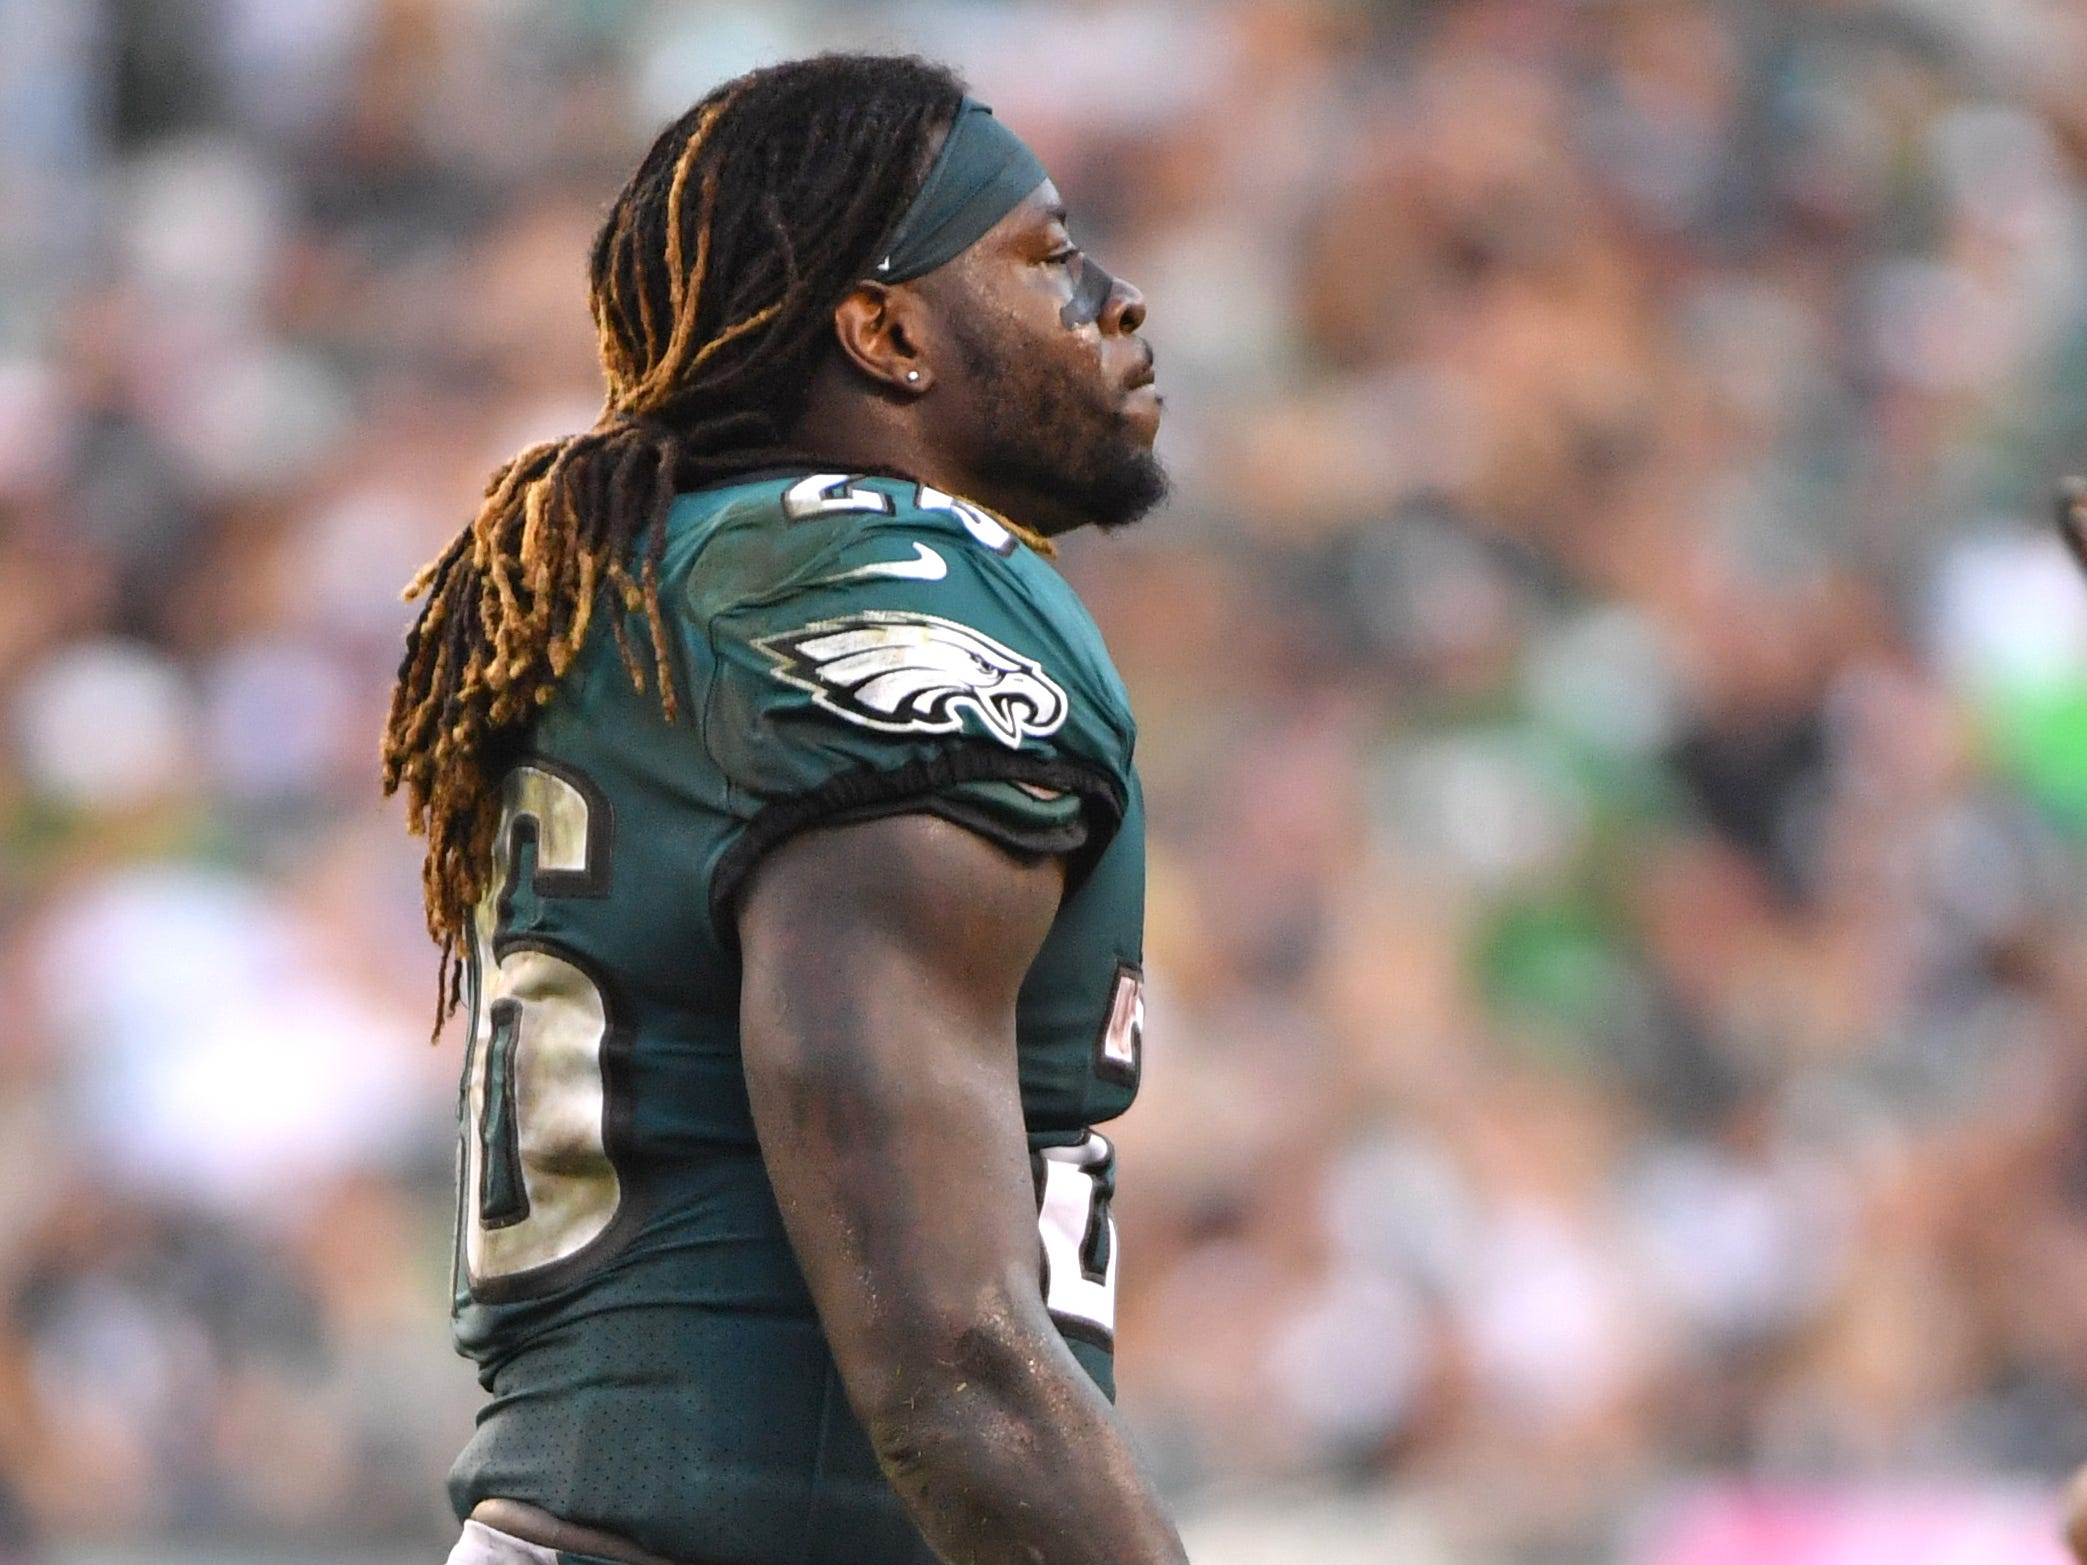 Jay Ajayi, RB, Philadelphia Eagles (torn ACL, placed on injured reserve)